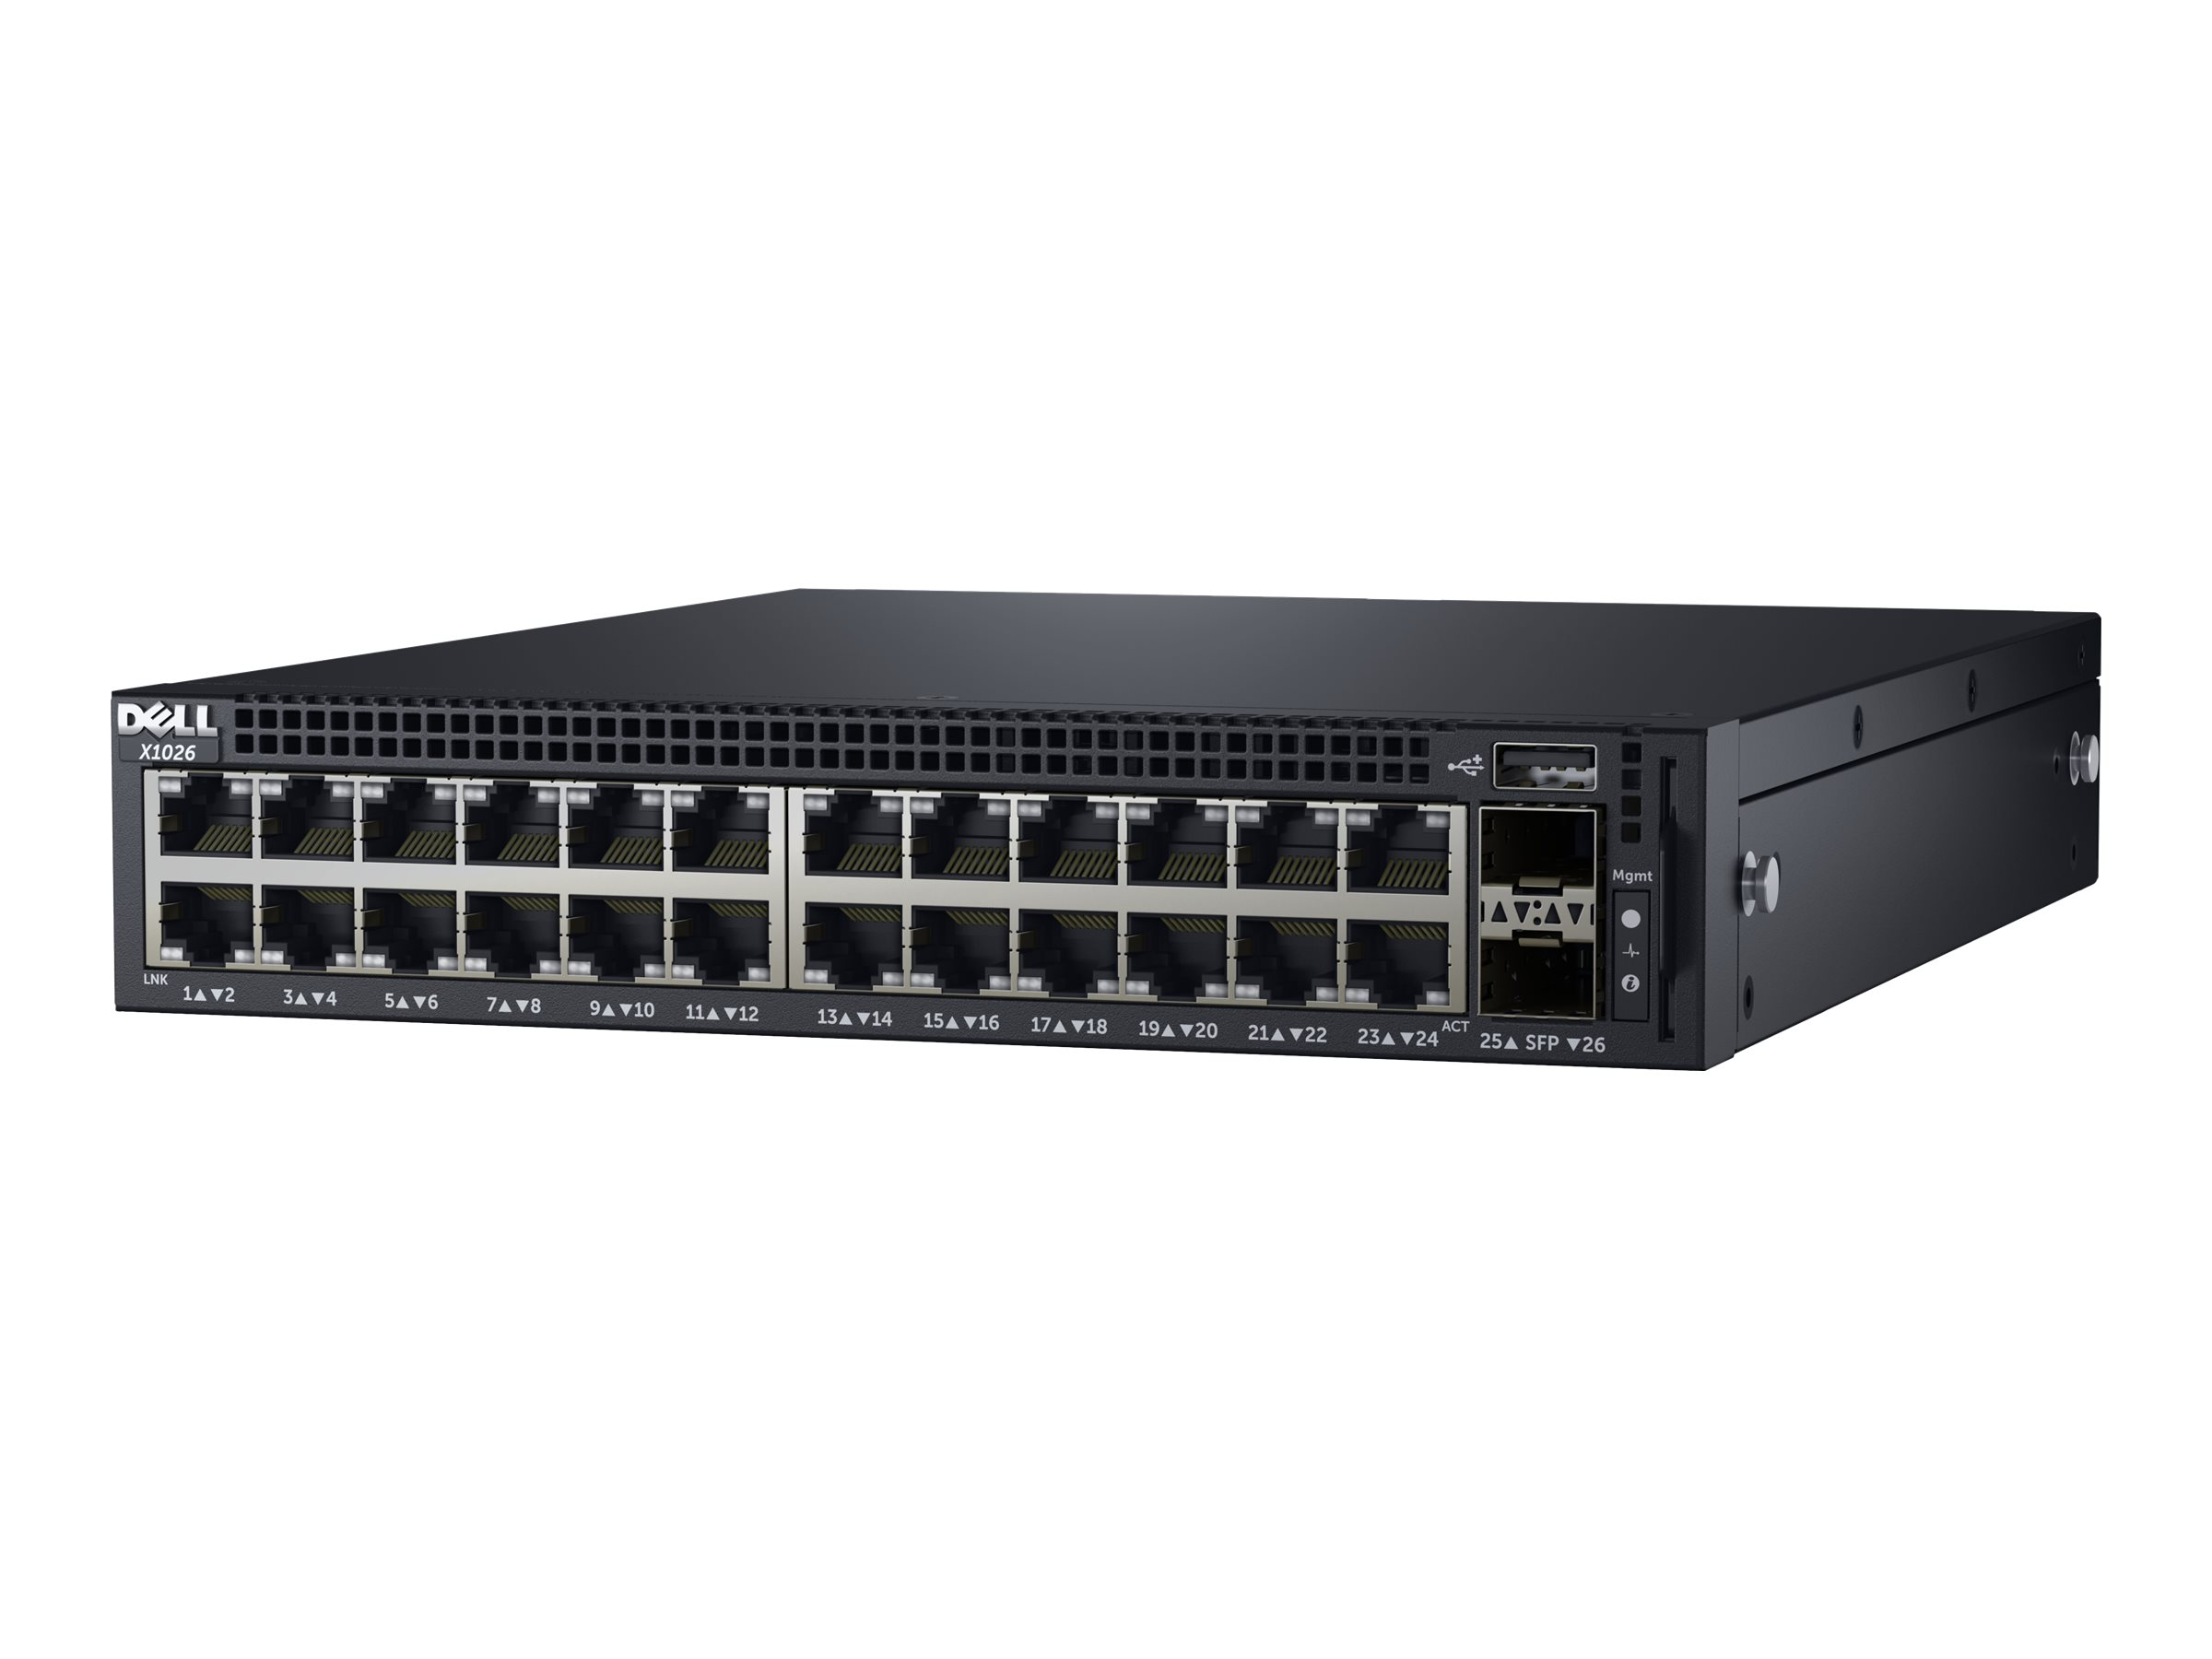 Dell EMC Networking X1026 - switch - 24 ports - managed - rack-mountable